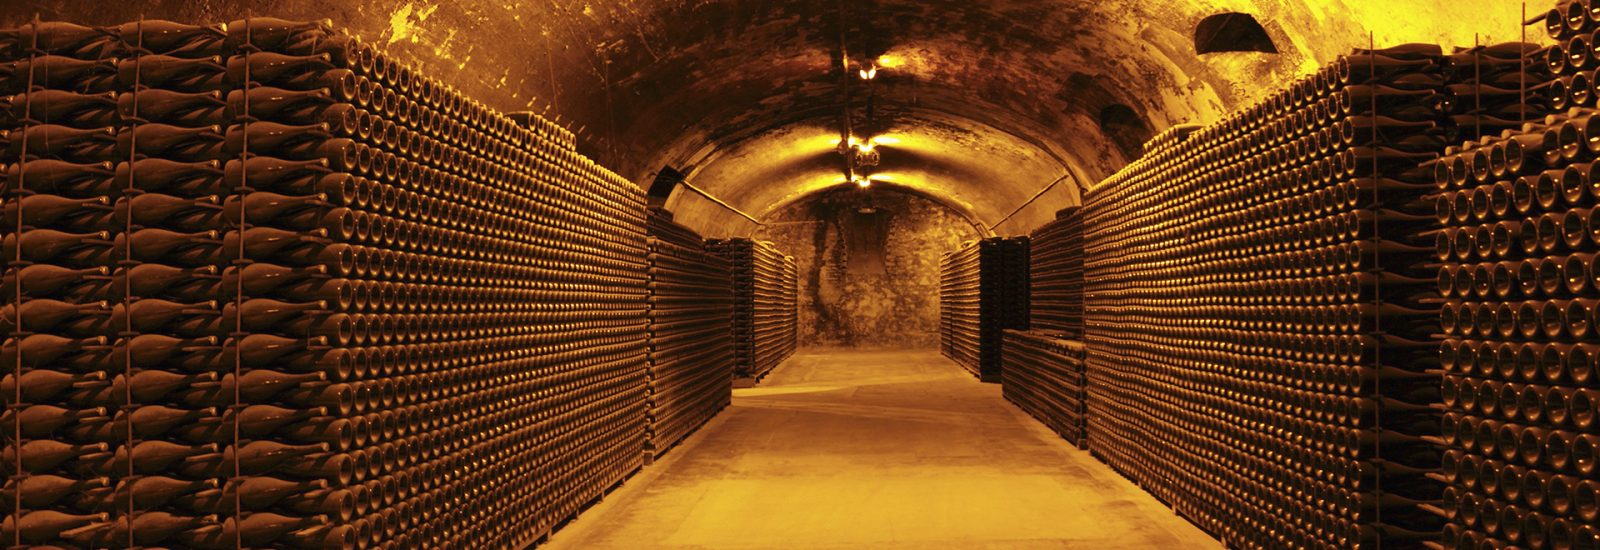 Wine-cave-champagne-banner-GettyImages